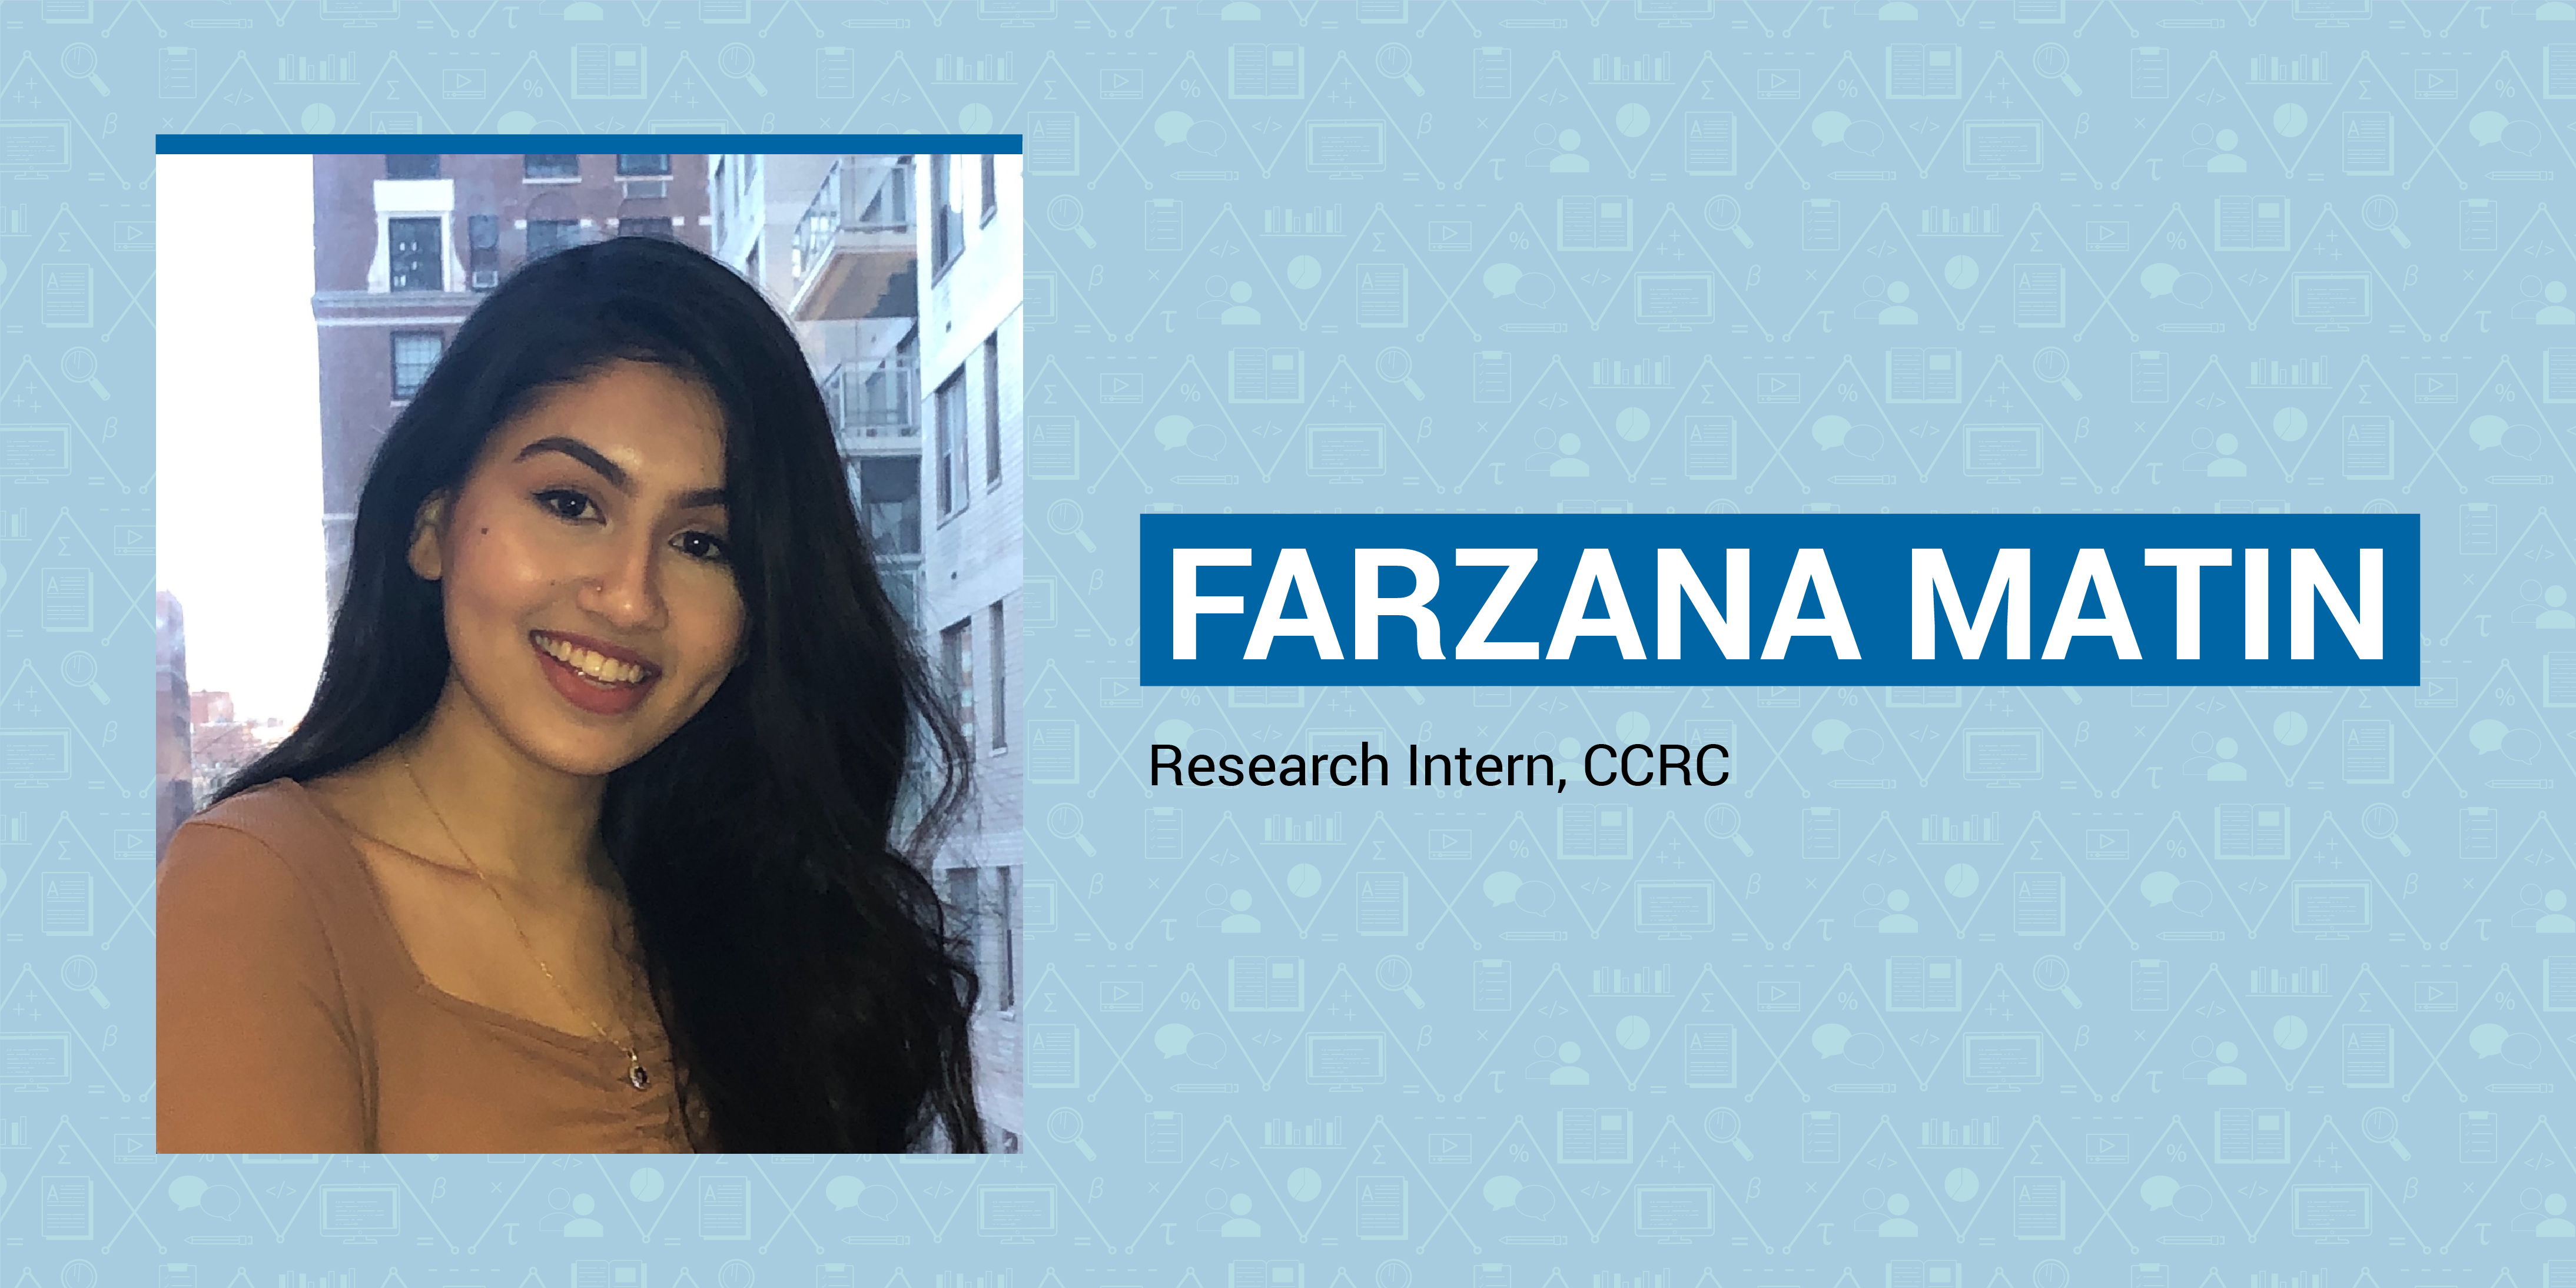 Inside CCRC: Farzana Matin on Why Higher Education Means Opportunity